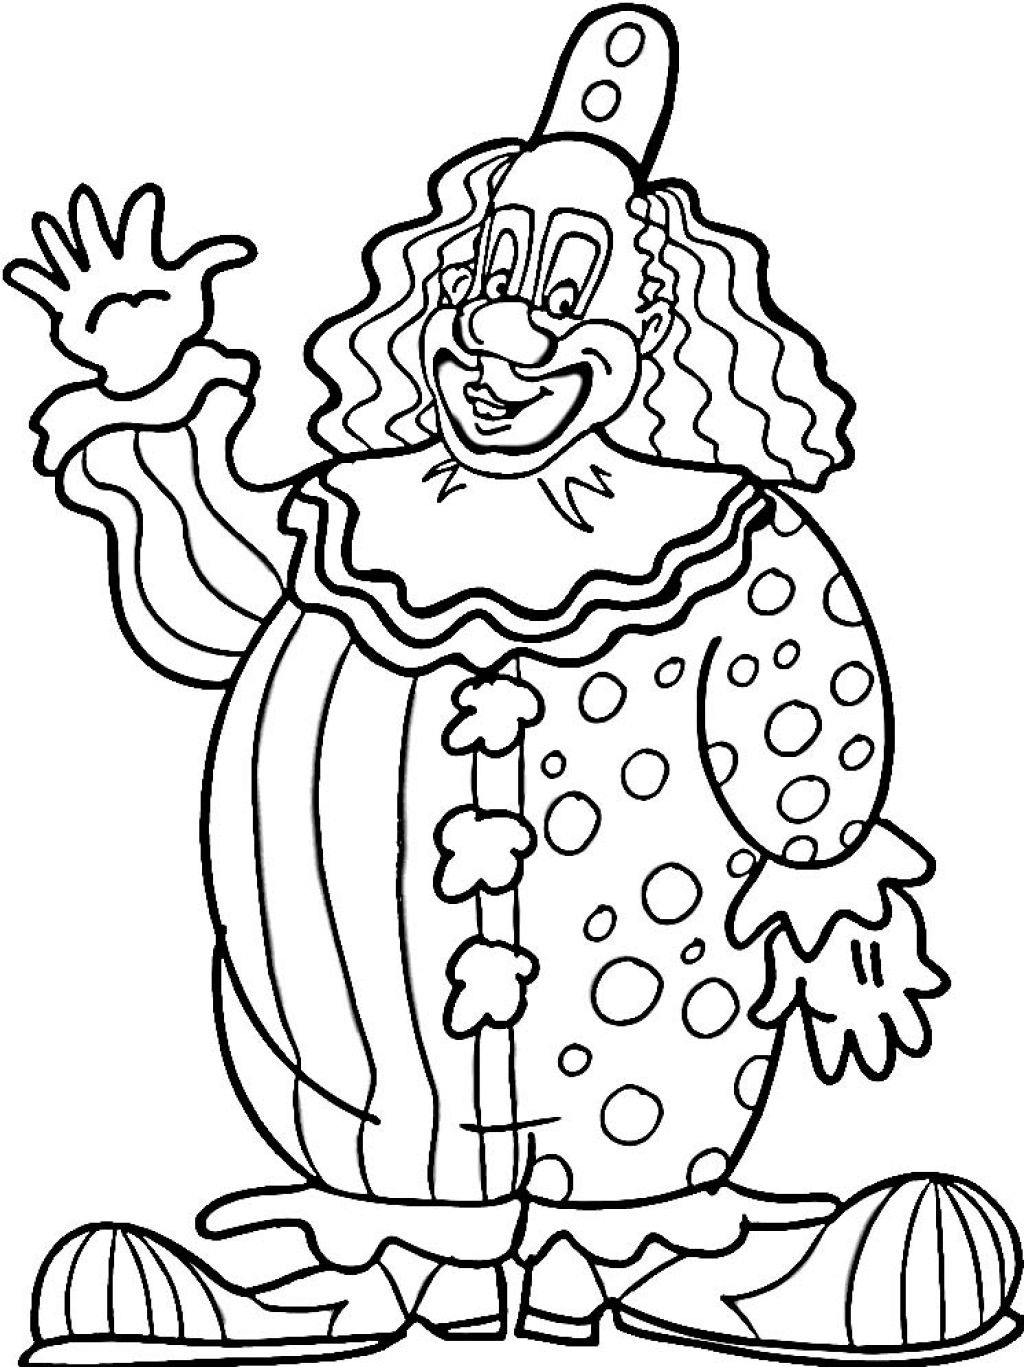 Clown Coloring Book Pages | Circus Kid Clown Coloring Page ...